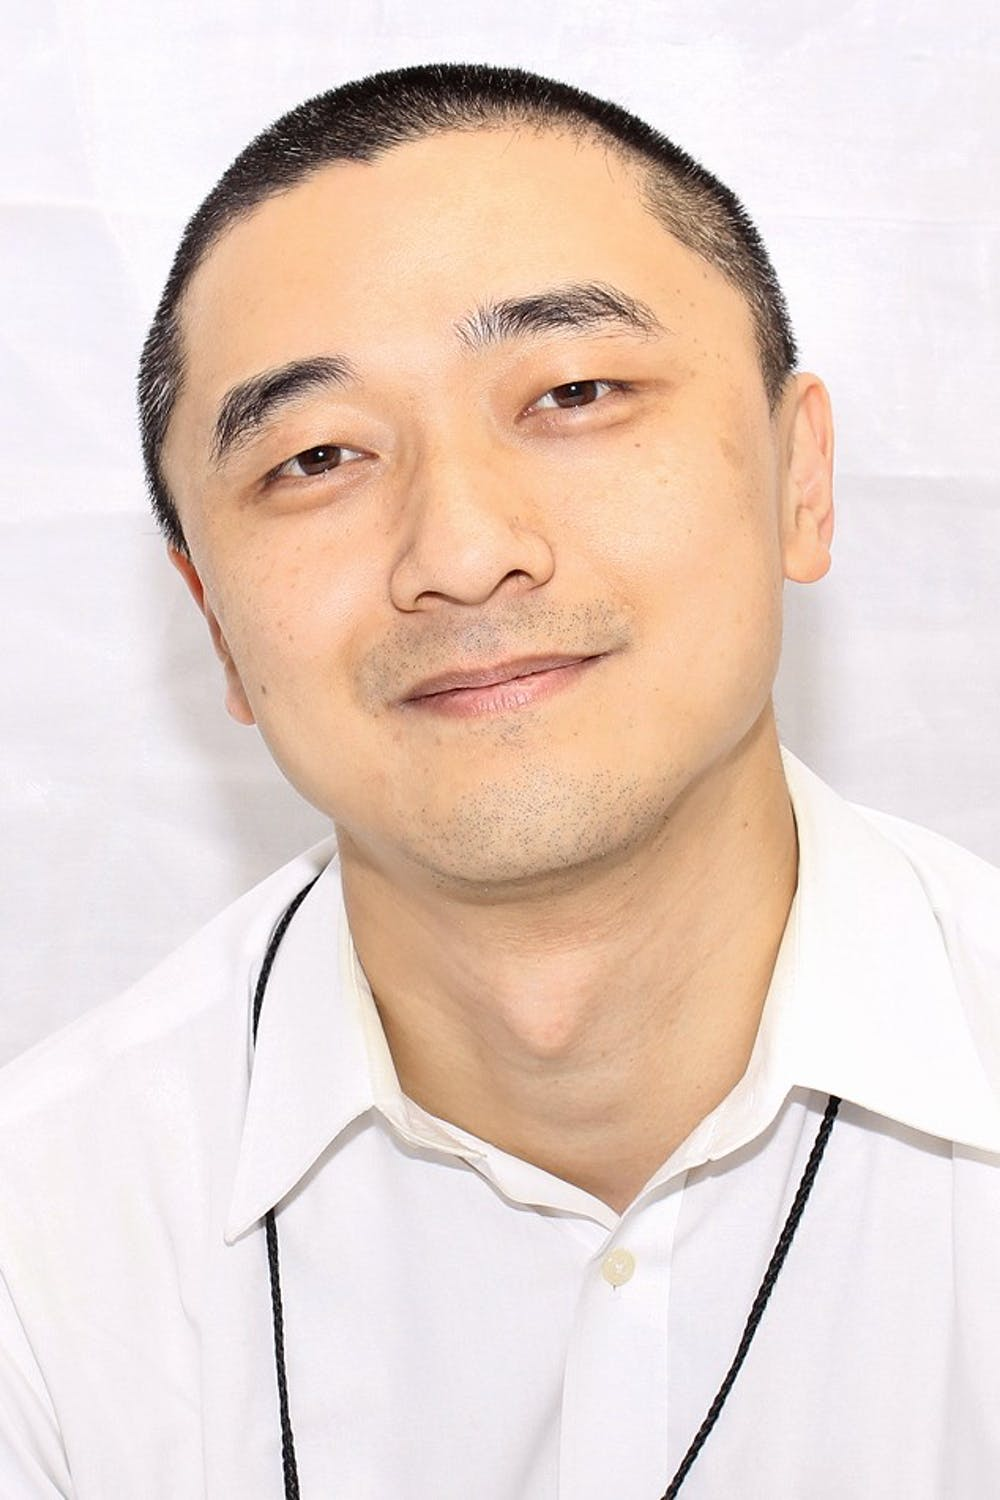 """<p>Visiting author and translator Ken Liu, known for such works as """"The Paper Menagerie,"""" spoke to Arts and Entertainment about why he writes and the unexpected joys of translating.</p>"""